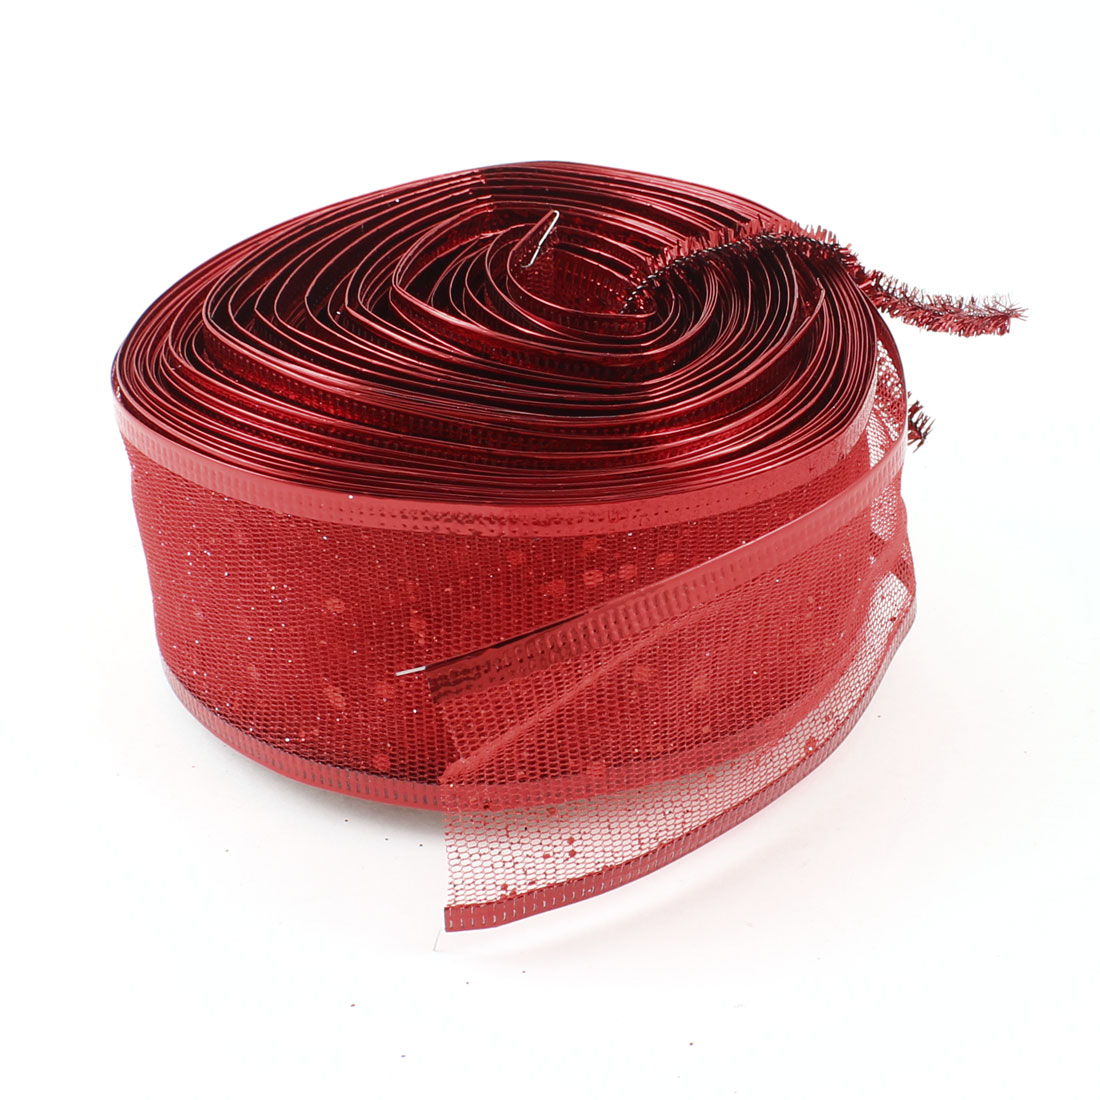 2M Long 50mm Wide Wired Gauze Ribbon Red Glitter Detail for Christmas Decoration